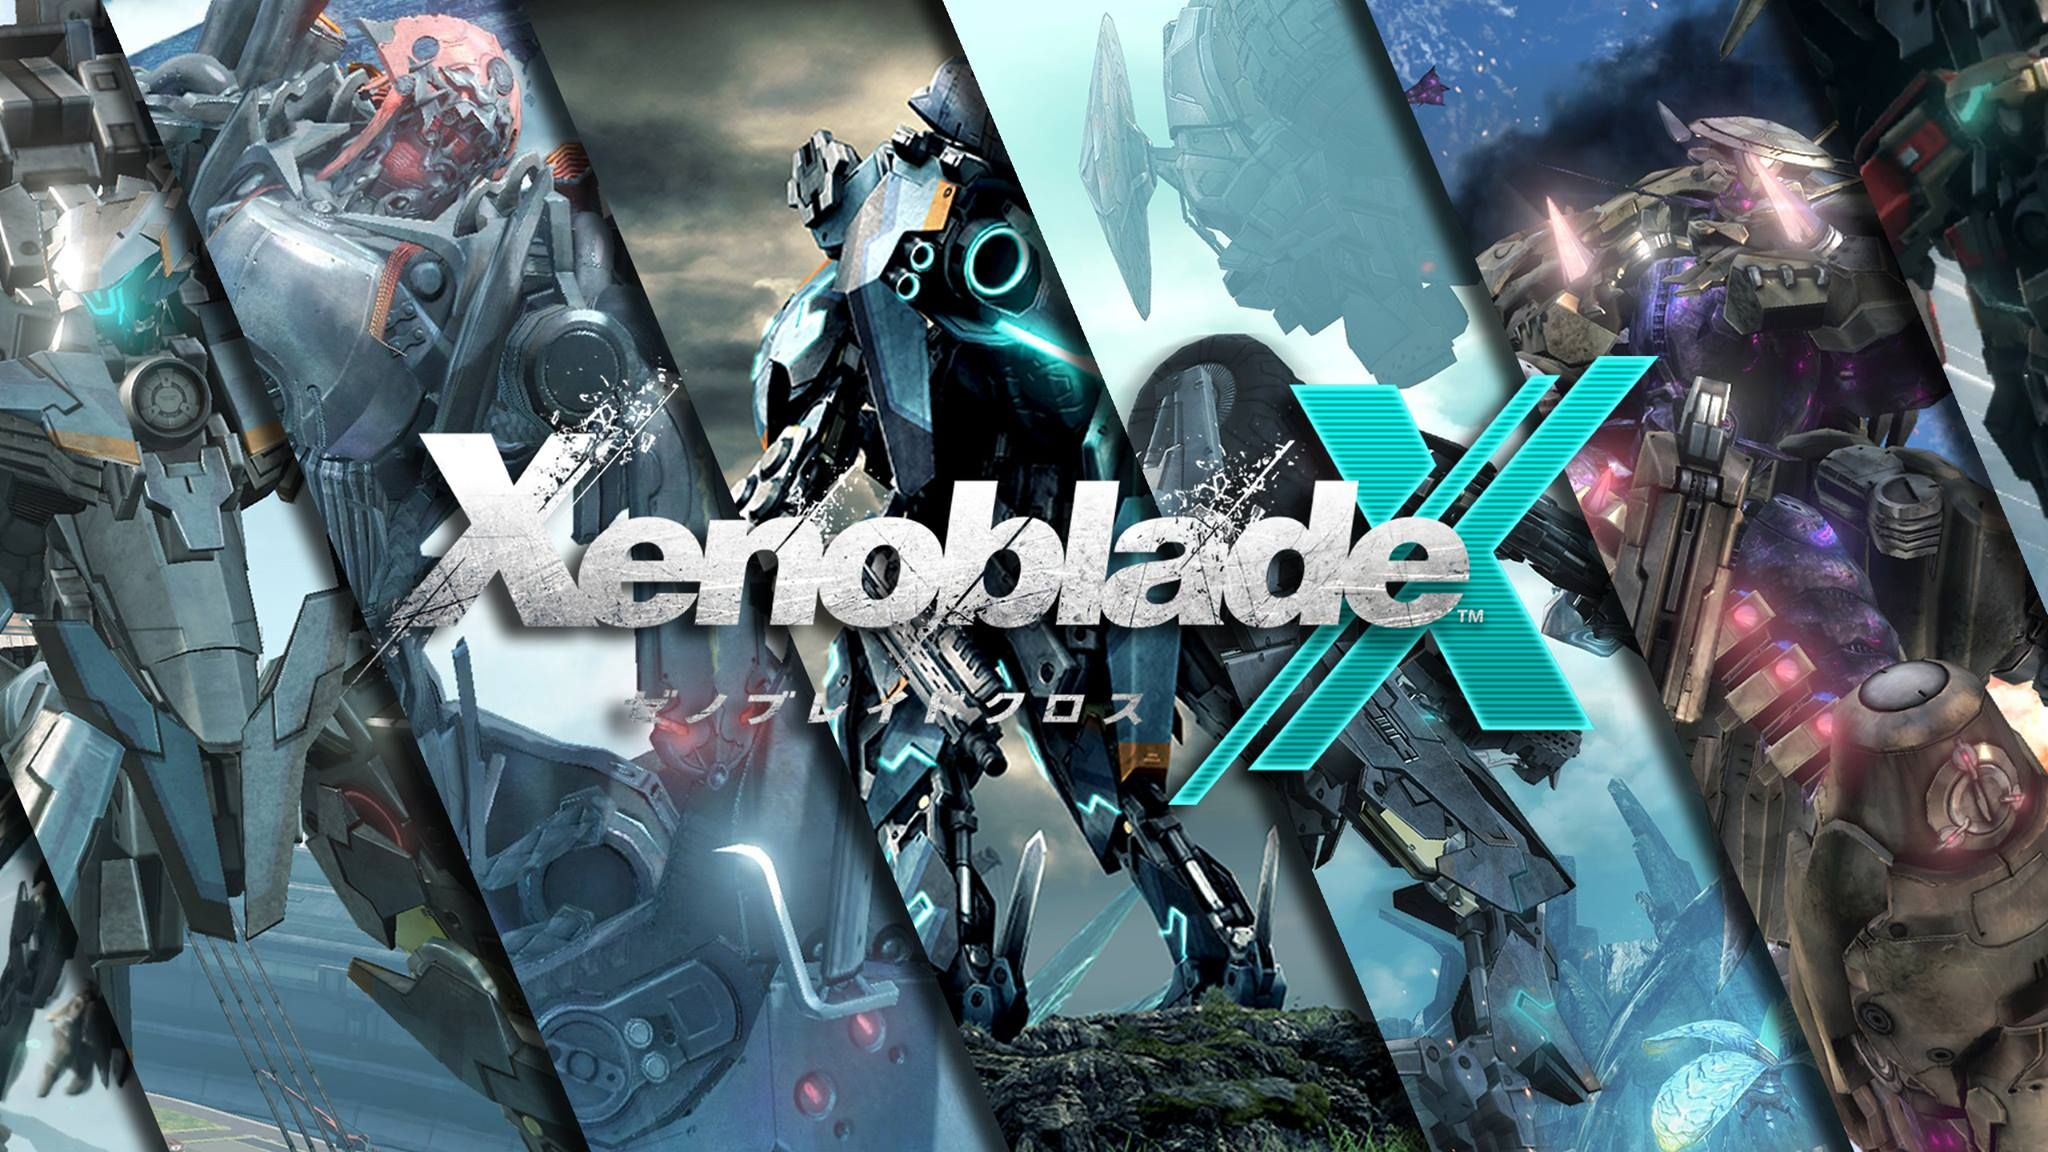 Xenoblade Chronicles X Wallpaper Xenoblade Chronicles